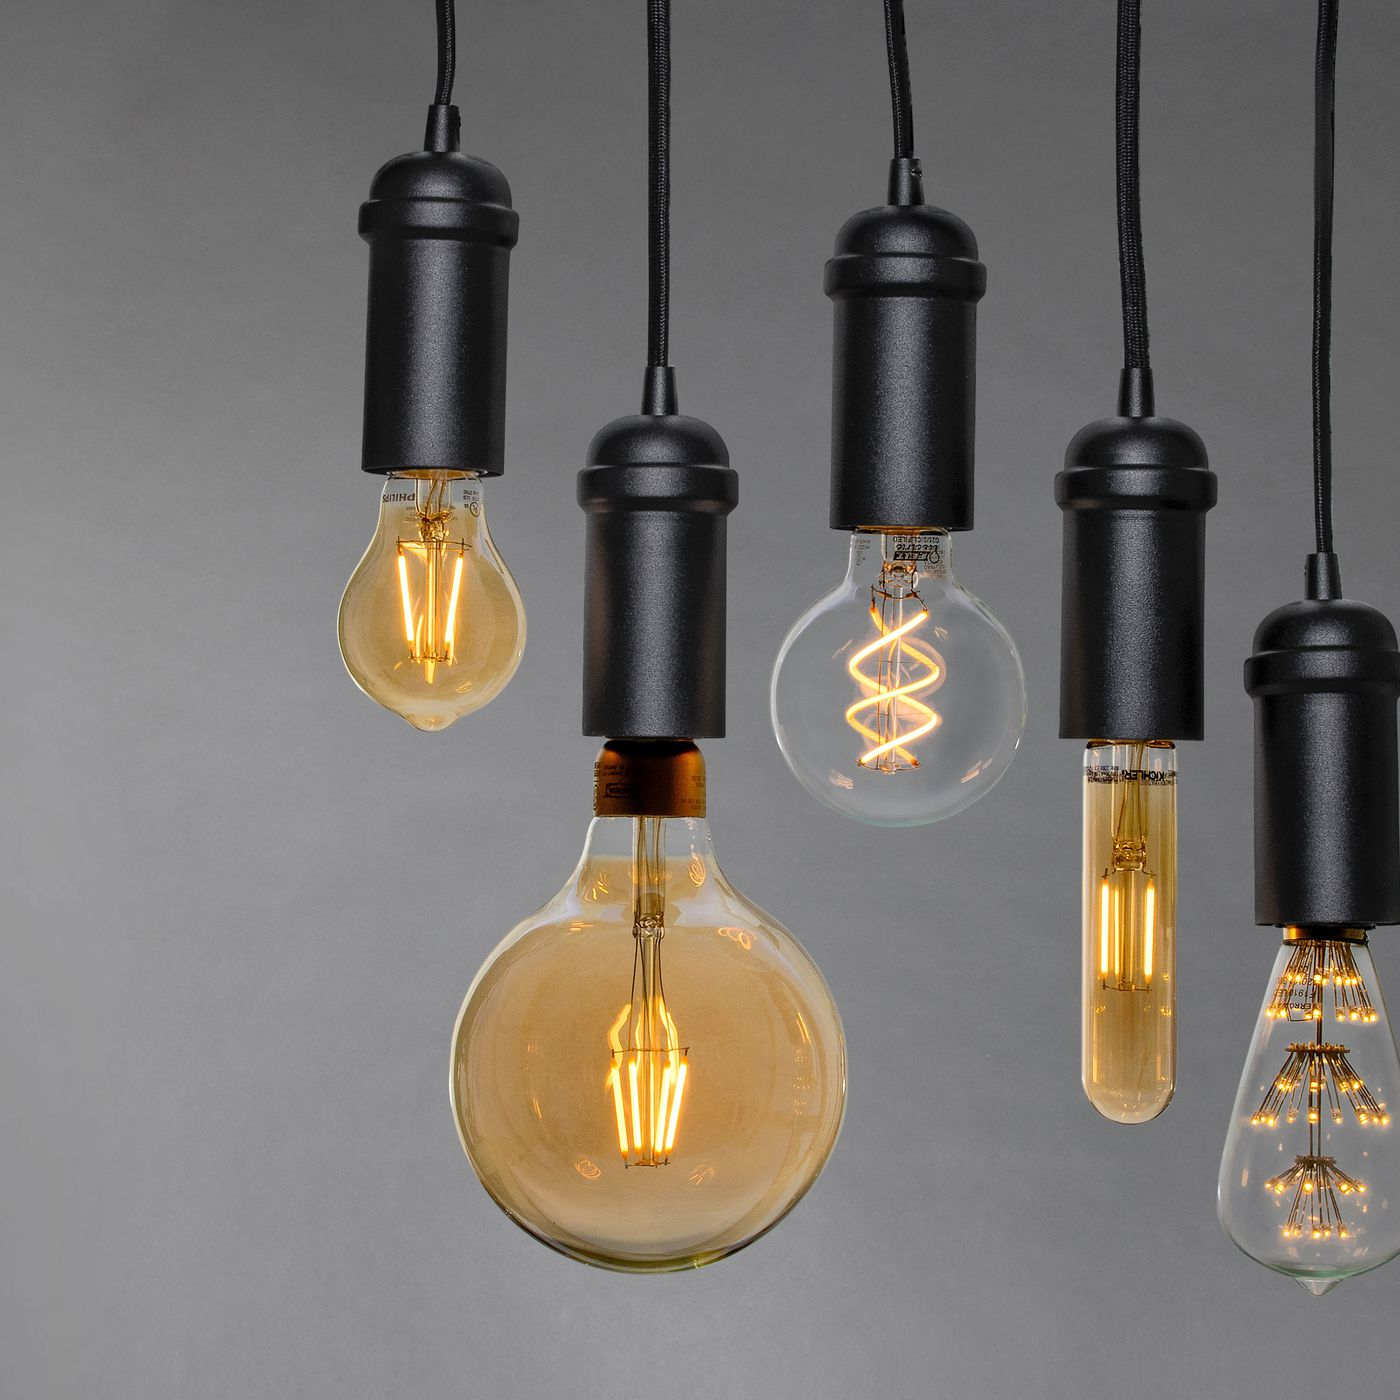 Light Bulb Buying Guide Types Wattage Lumens More This Old House